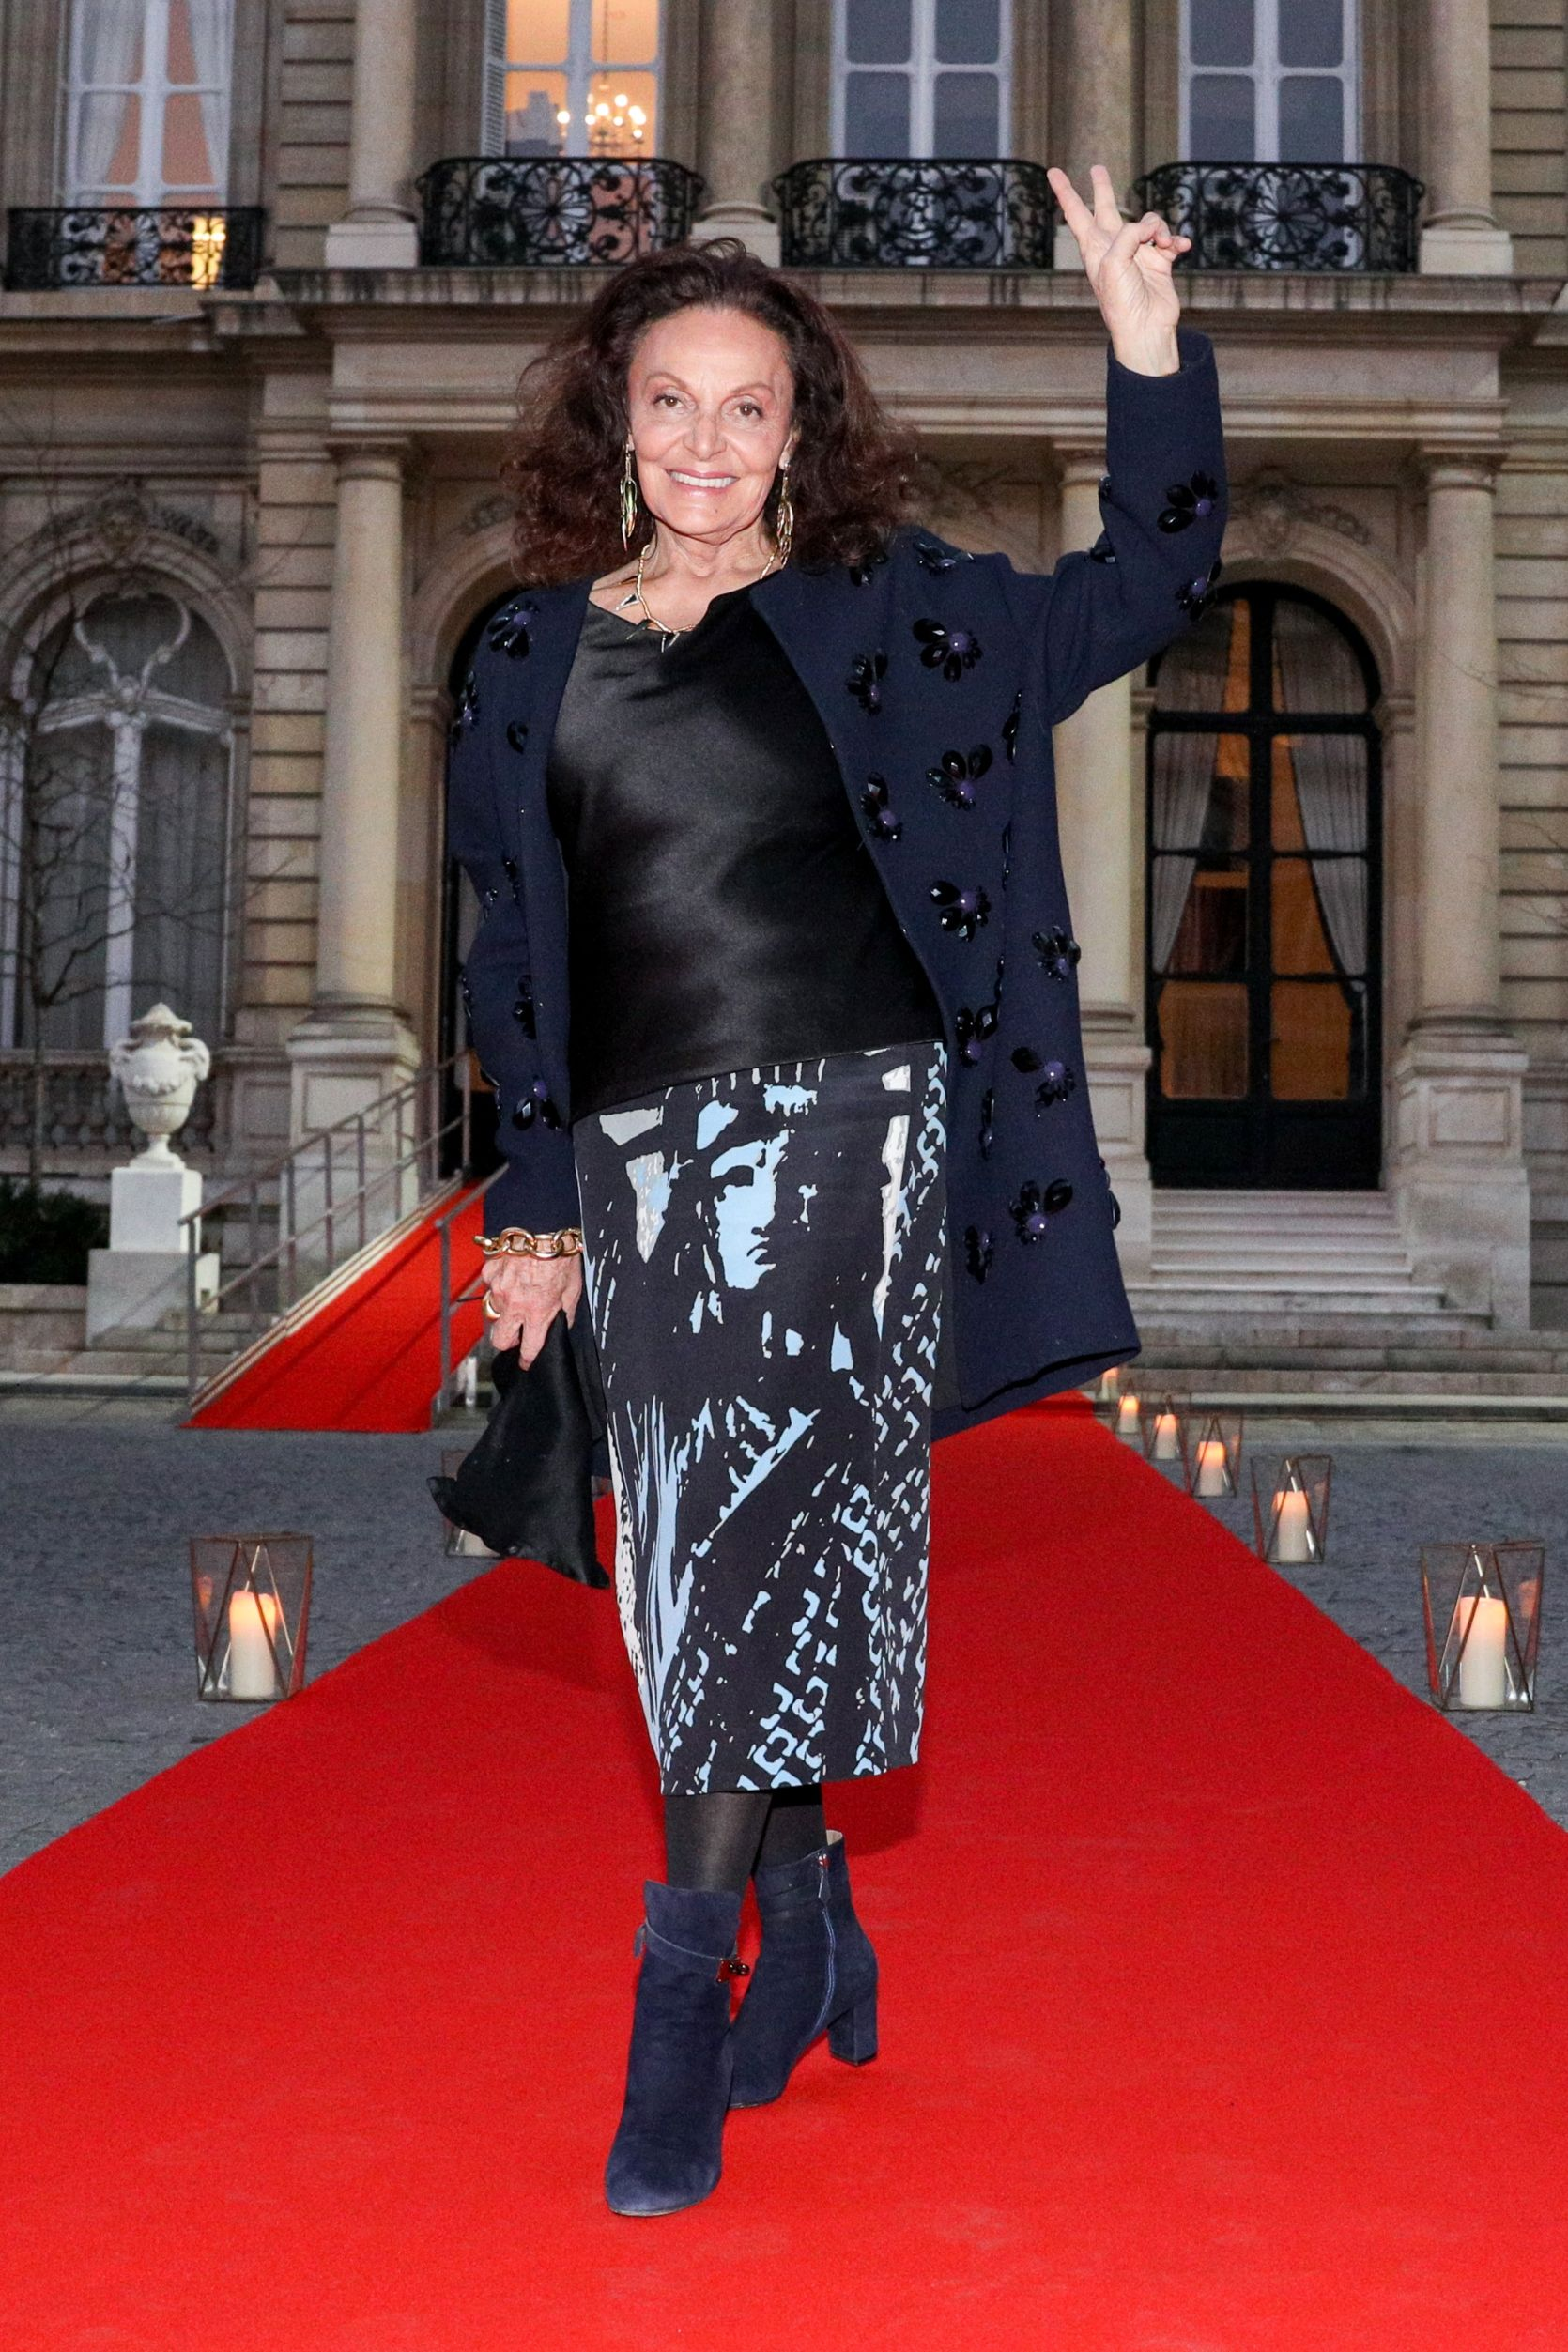 Diane von Furstenberg Diane von Furstenberg at the cocktail reception in celebration of her forthcoming opening of the Statue of Liberty Museum on February 26 in Paris.